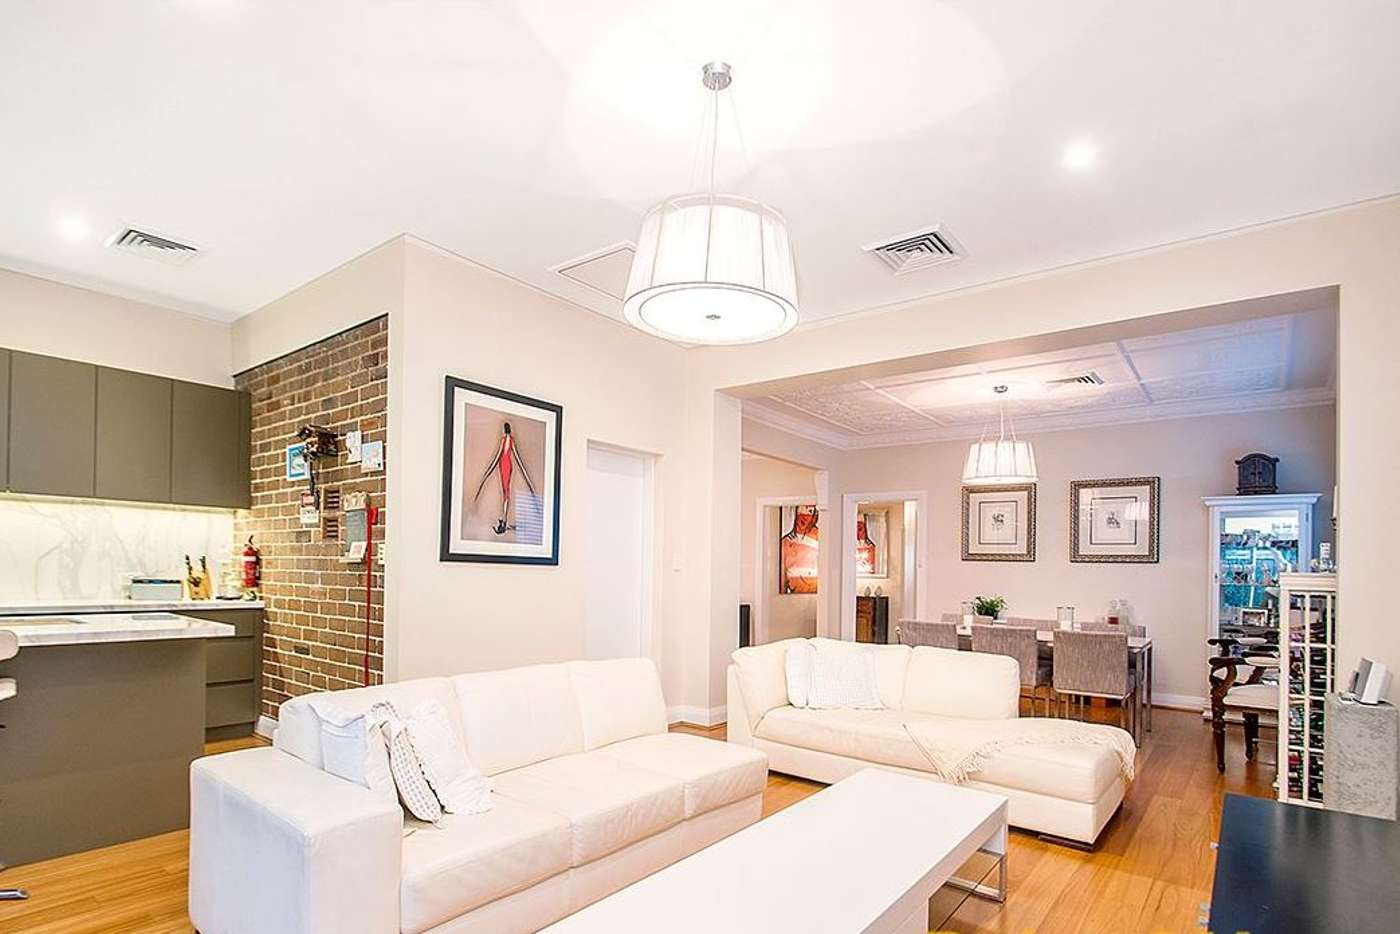 Sixth view of Homely house listing, 10 Coralie Street, Wareemba NSW 2046